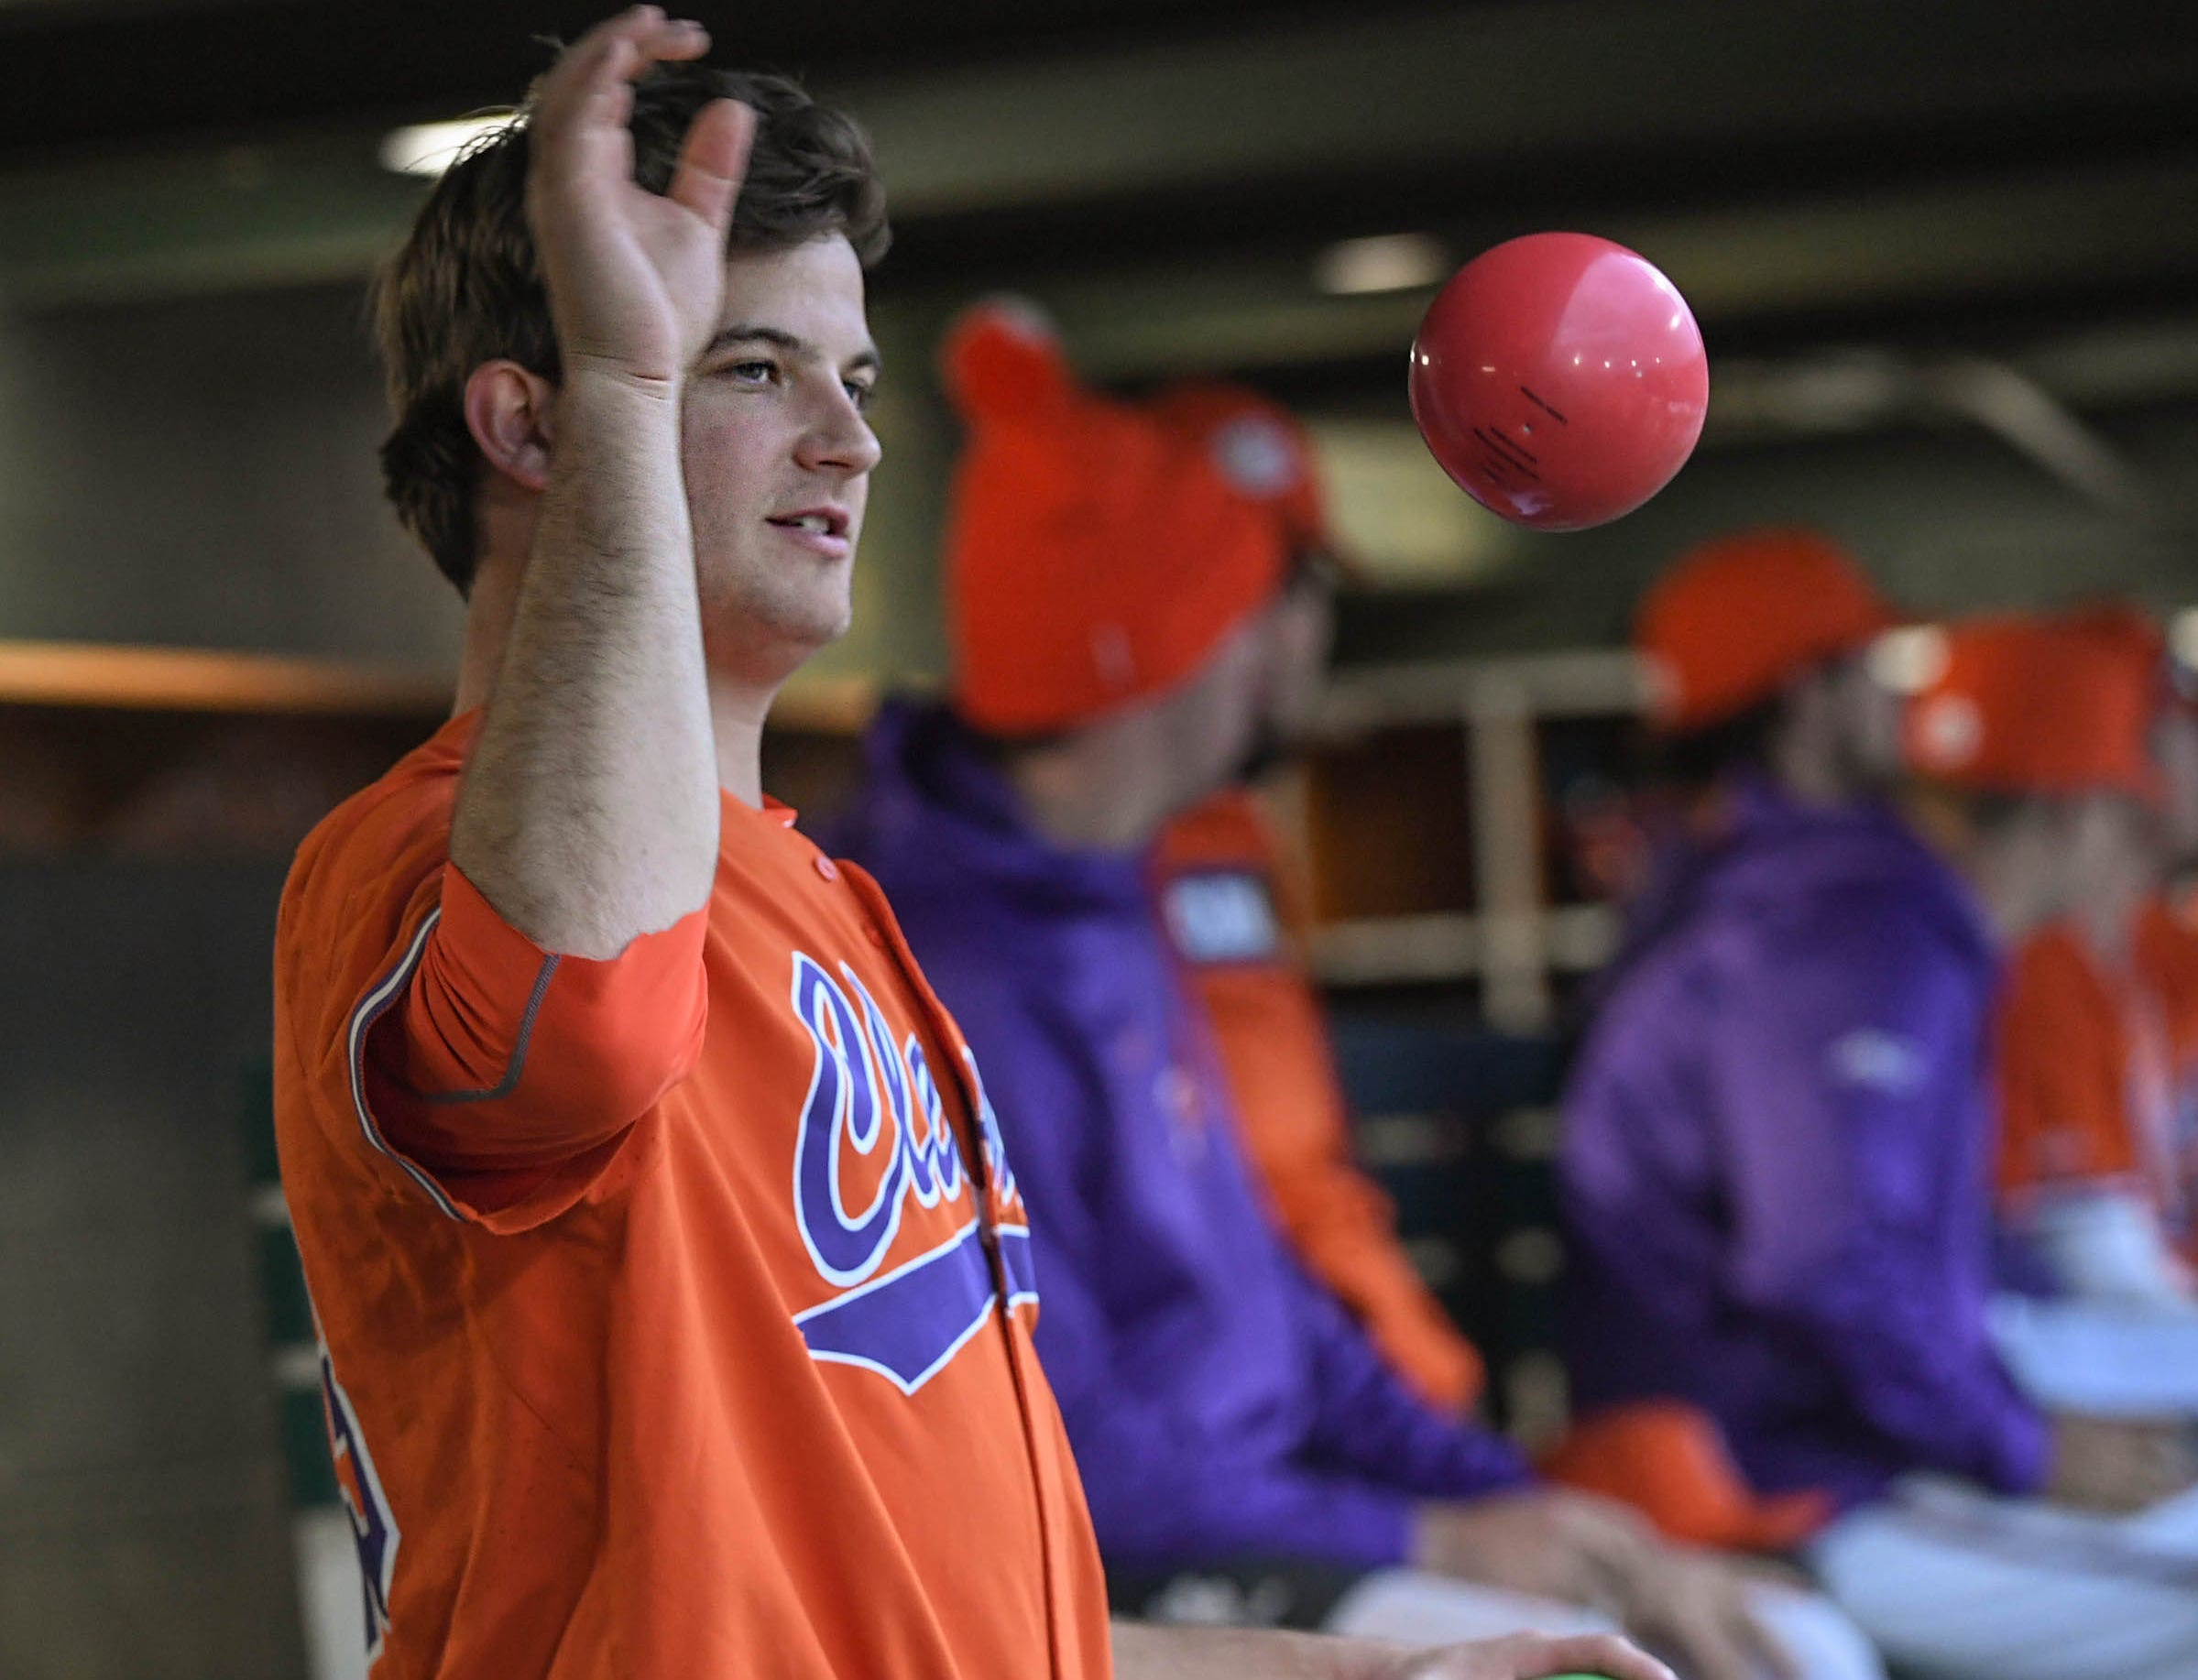 Clemson junior Carson Spiers(23) tosses exercise balls in the dugout between pitching innings against South Alabama during the top of the eighth inning at Doug Kingsmore Stadium in Clemson Friday, February 15, 2019.